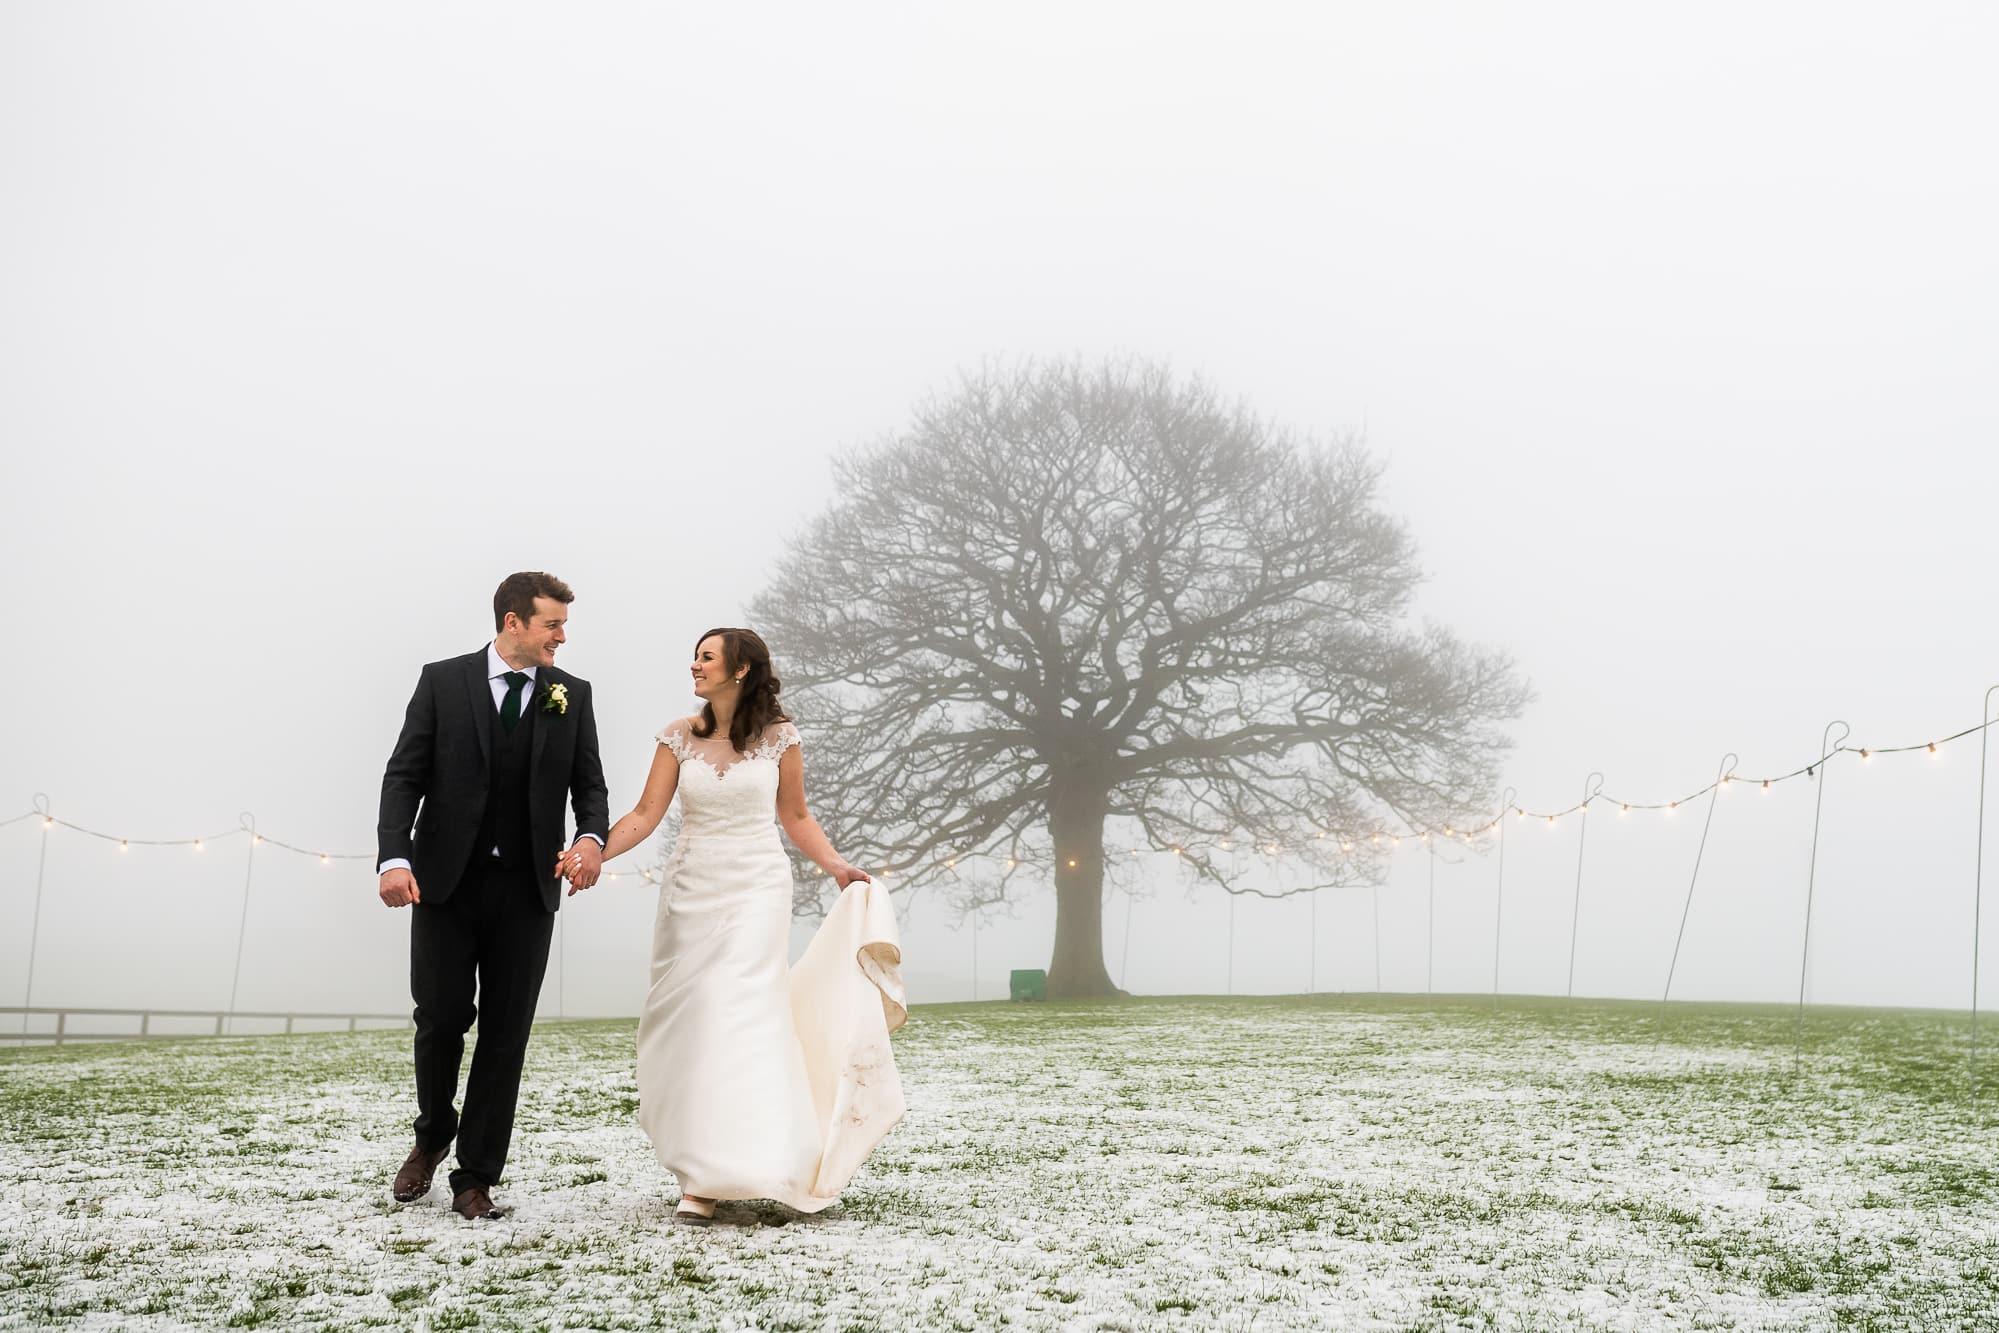 the newly weds walking in the field at Heaton House farm with the iconic tree behind